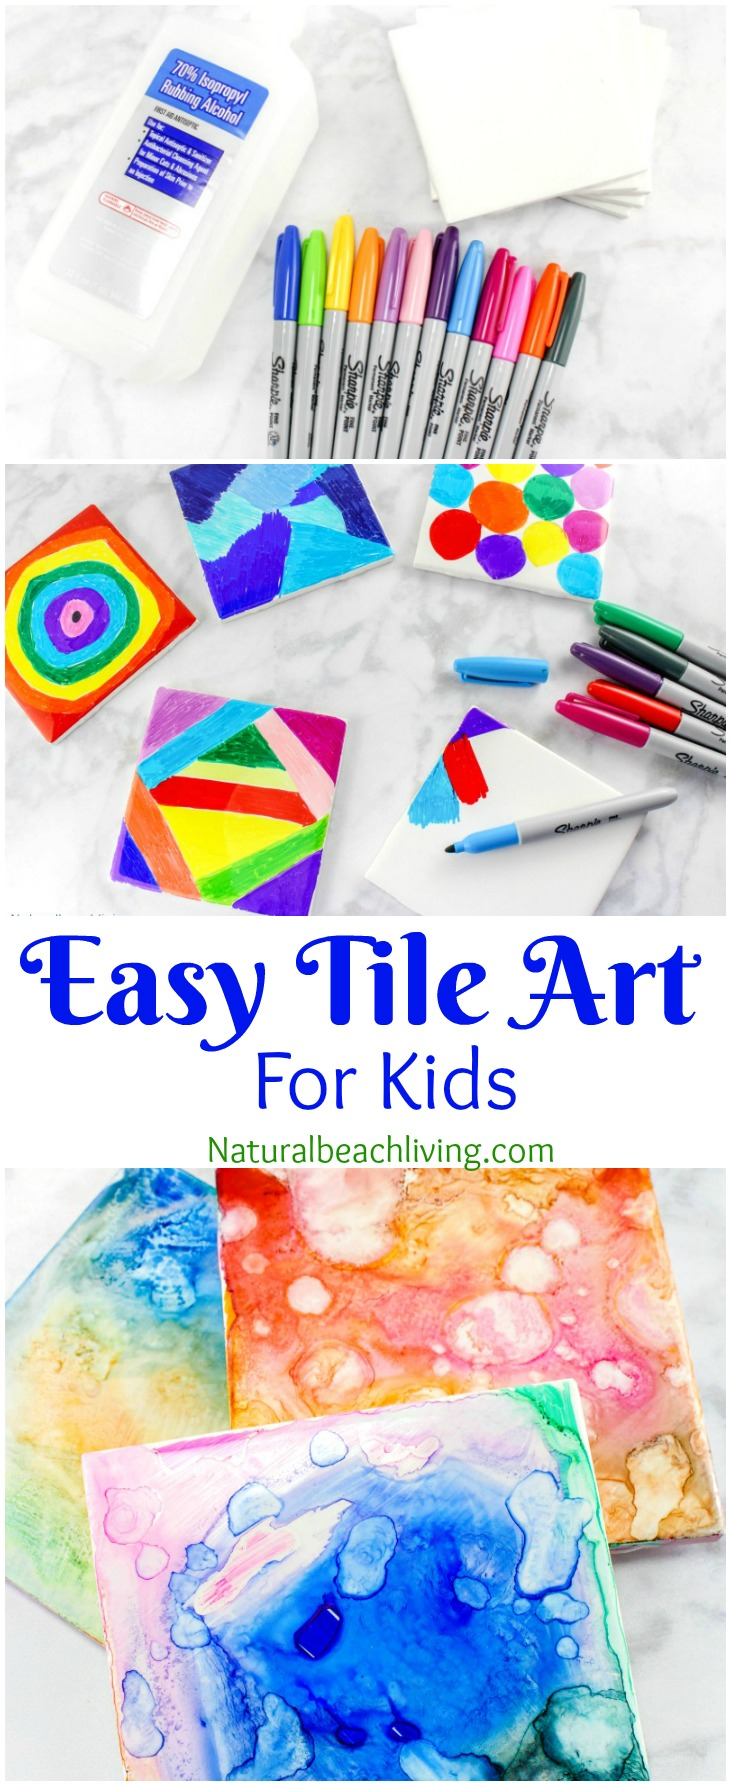 Easy tile art for kids that everyone will enjoy best Fun painting ideas for toddlers